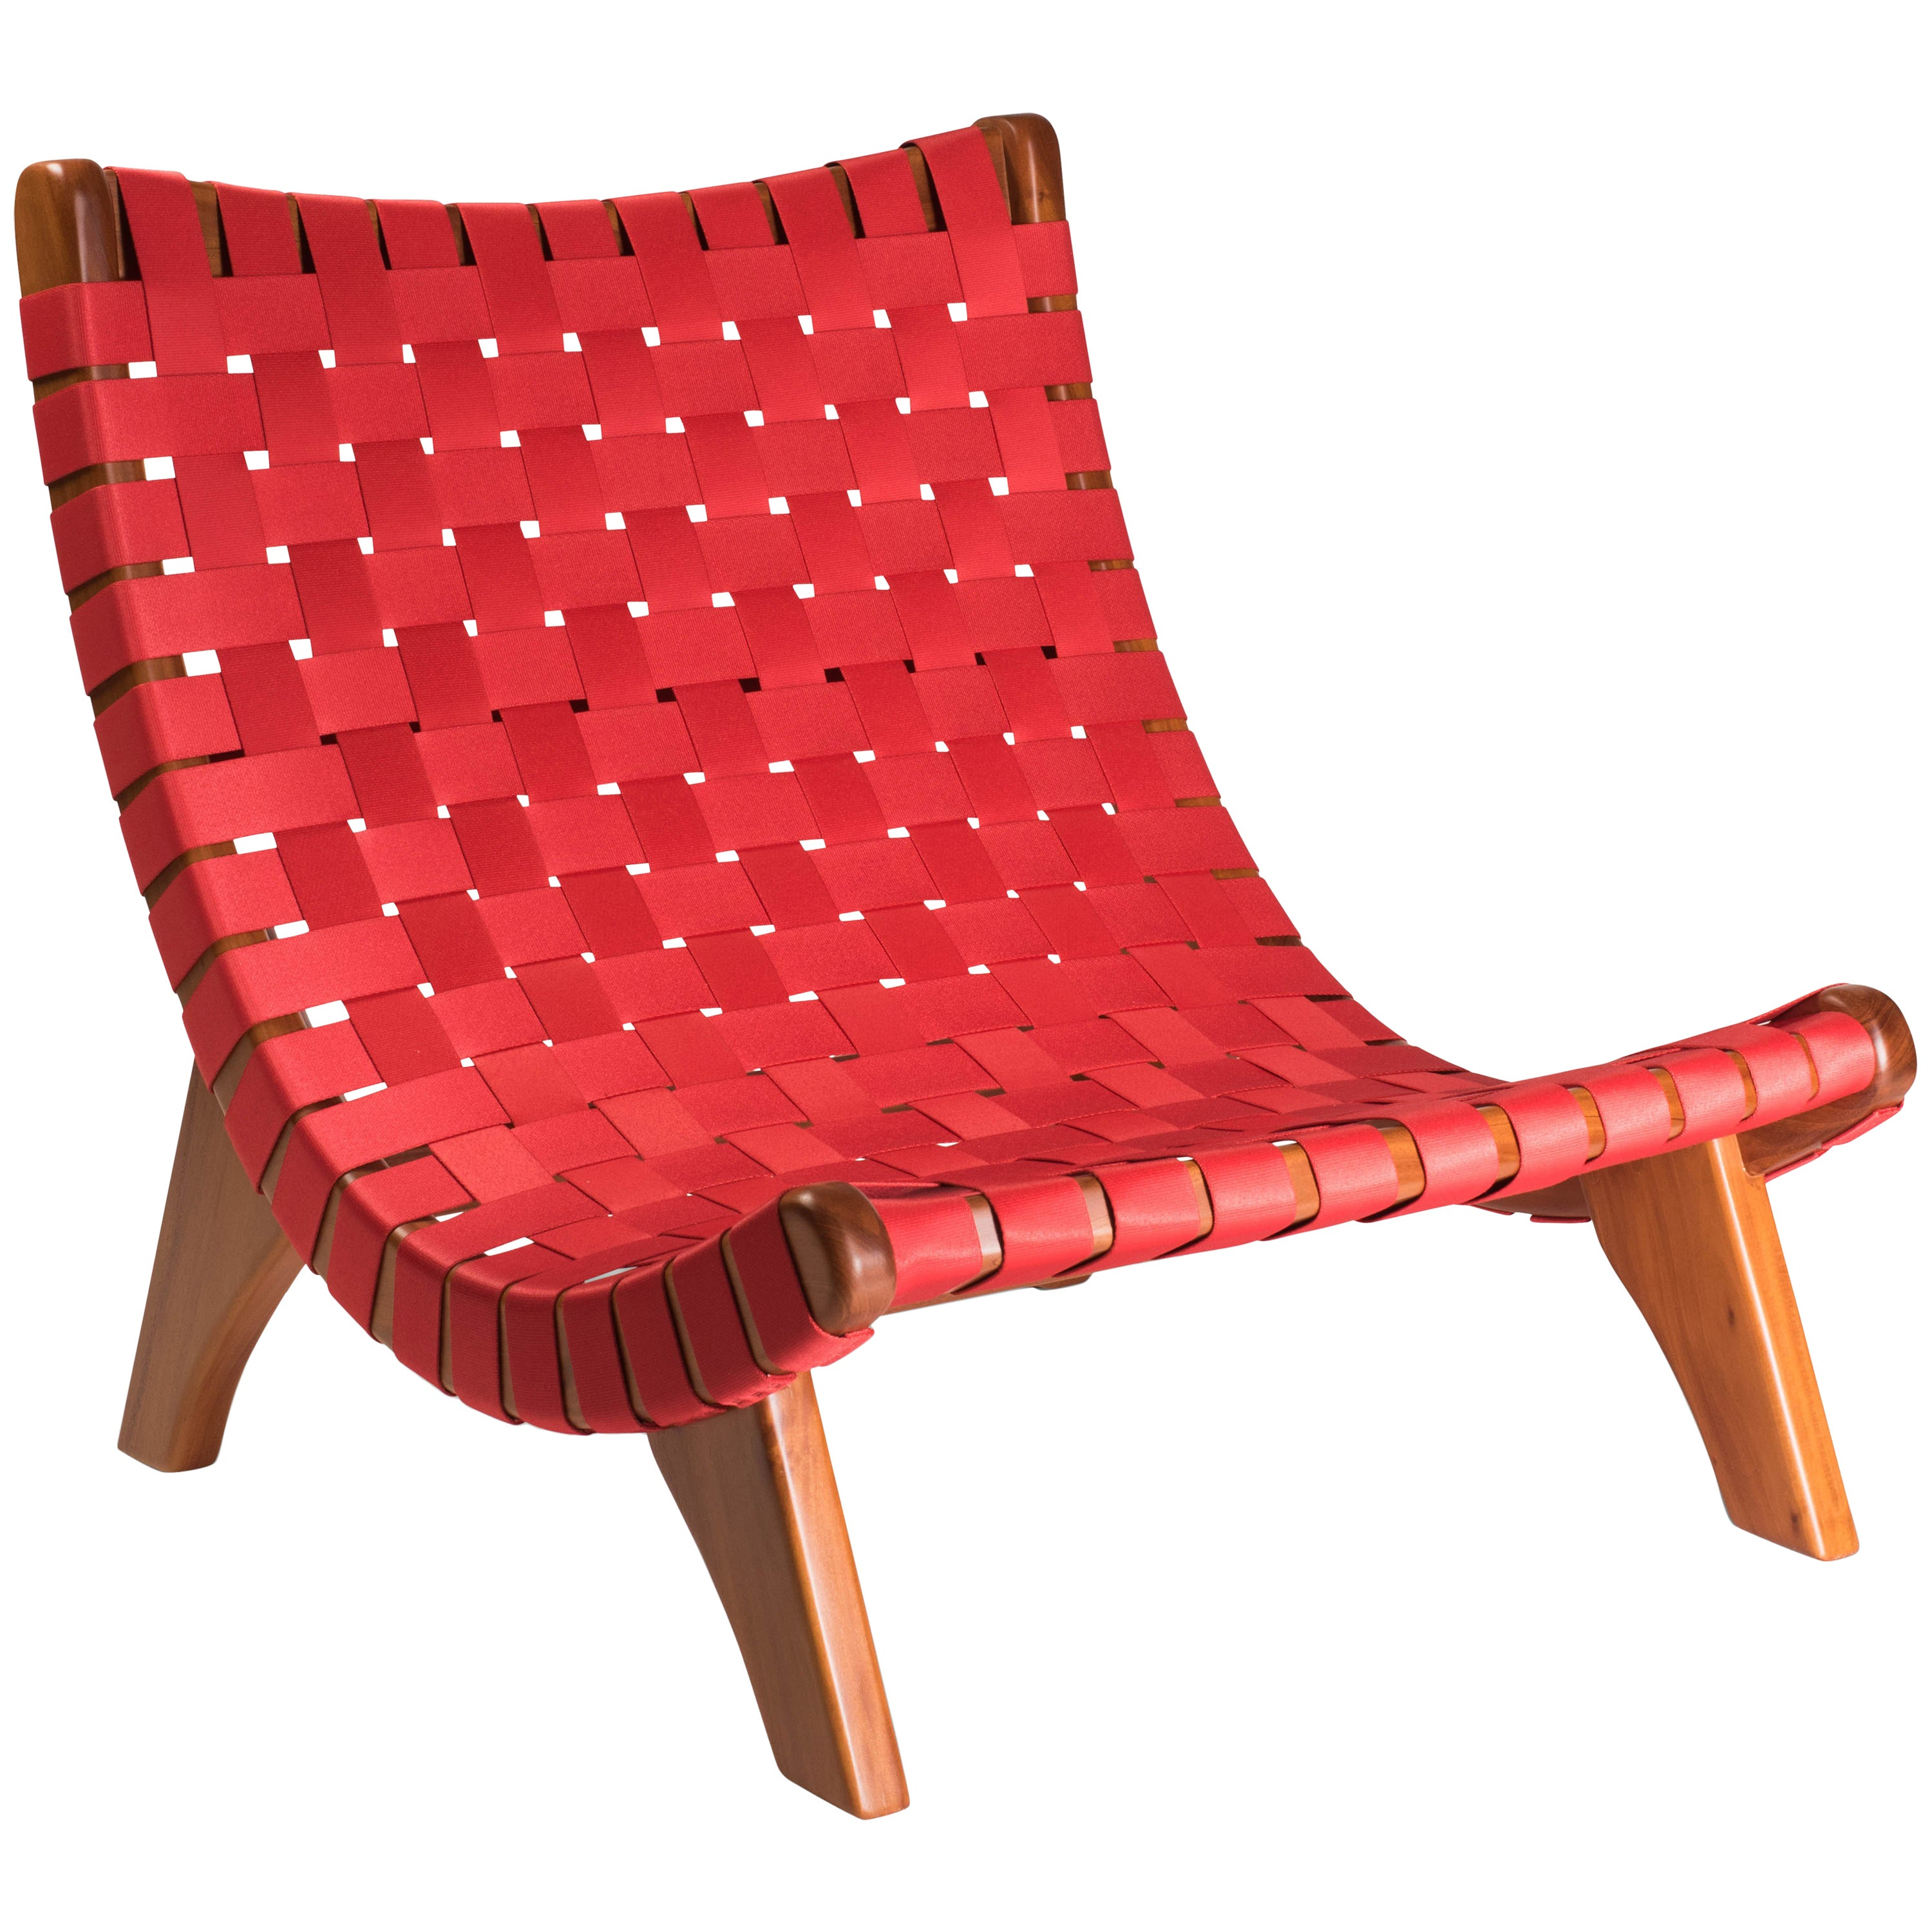 Modernist Mexican San Miguel Lounge Chair by Michael van Beuren from LUTECA